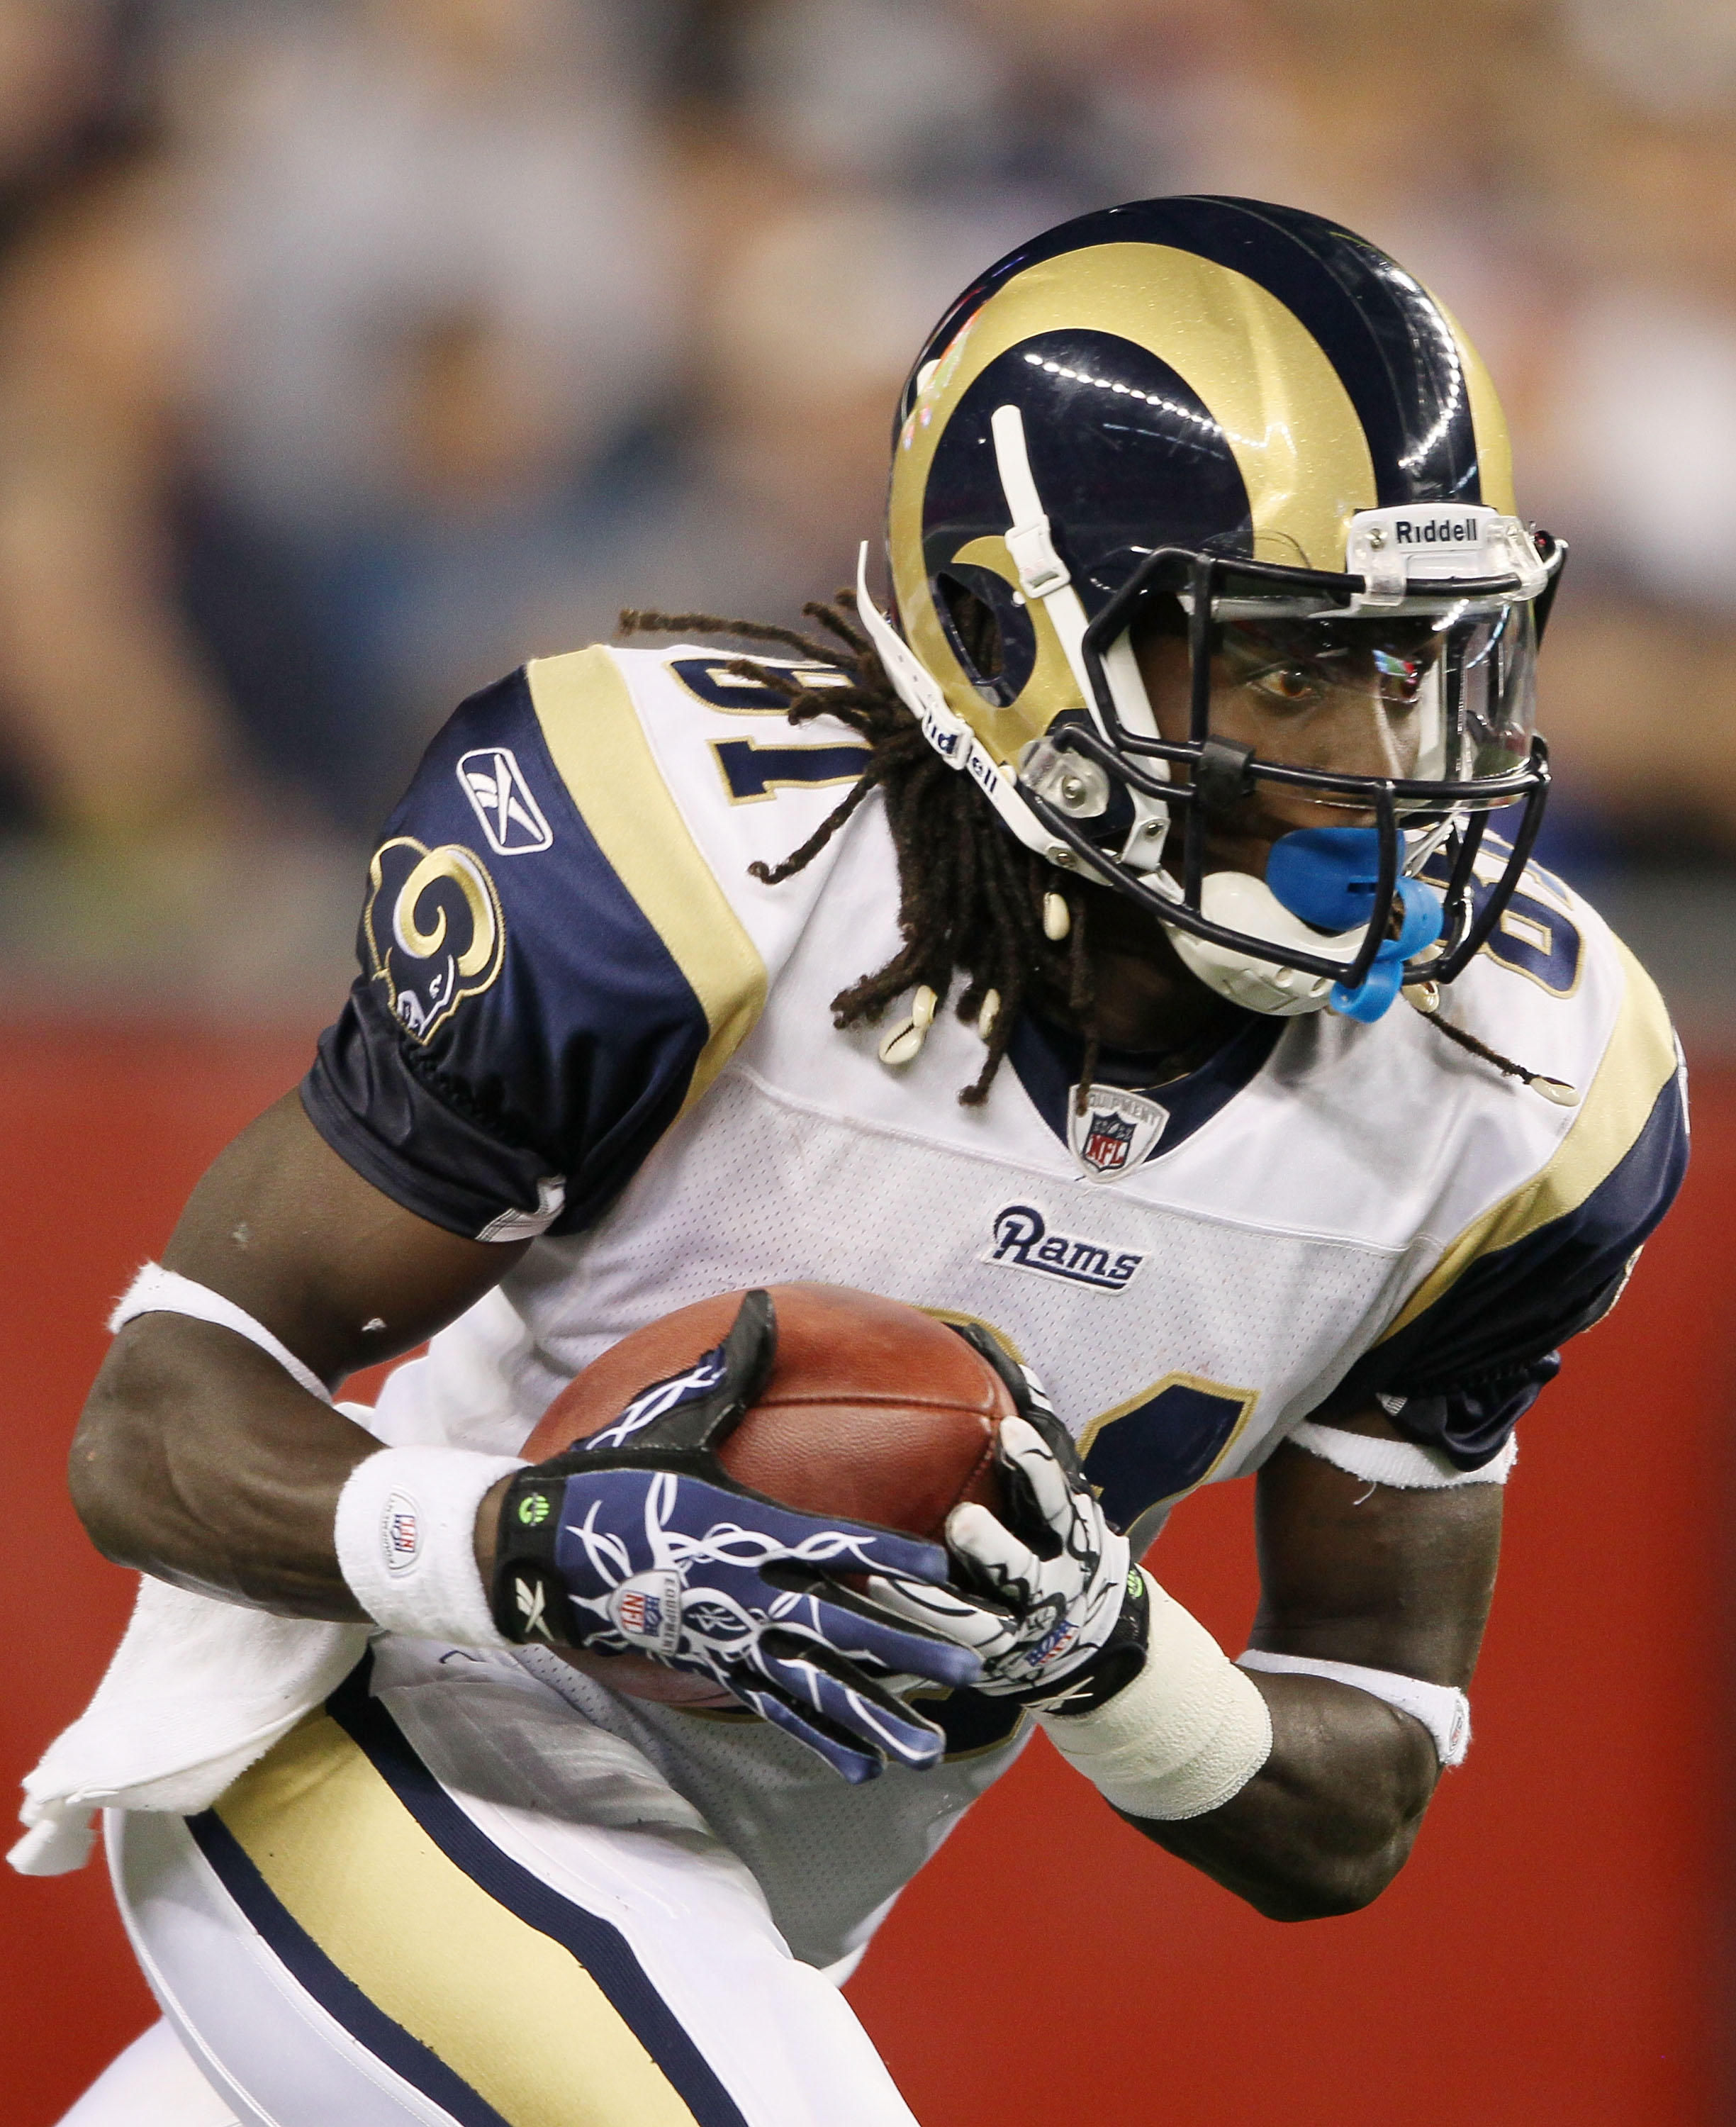 Mardy Gilyard, the rookie beast who is about to get his opportunity